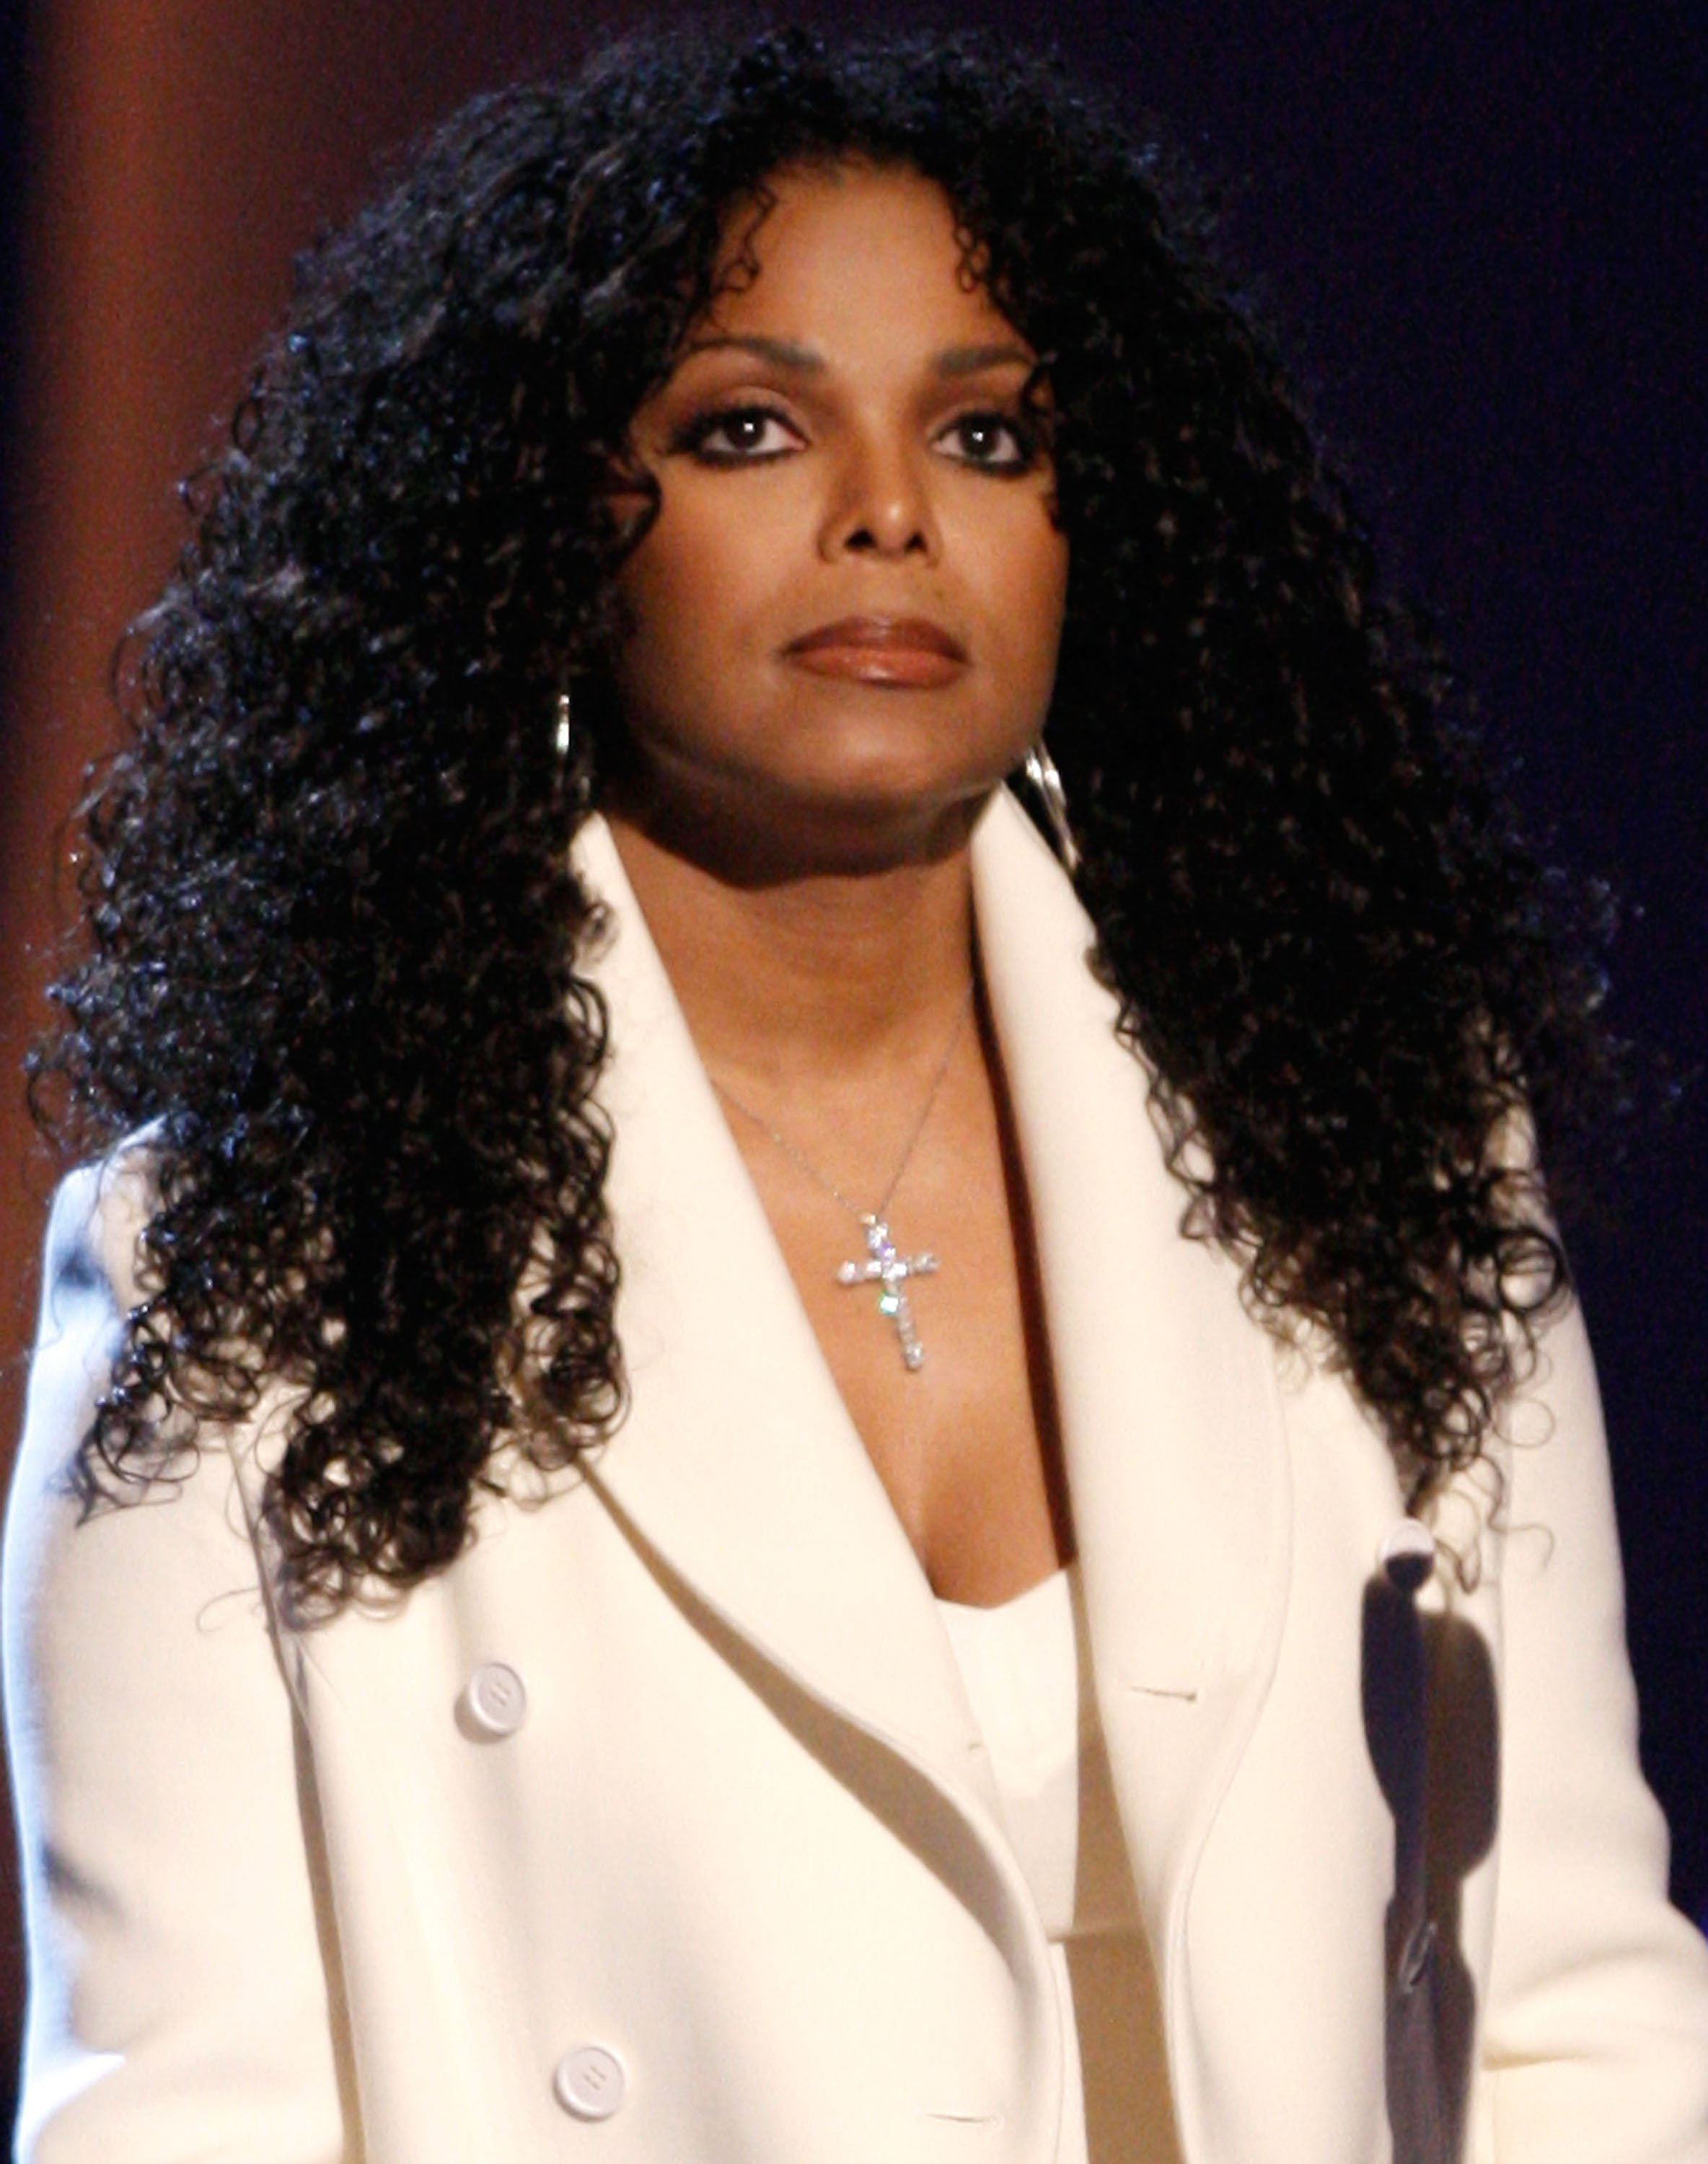 Janet Jackson at the 2009 BET Awards, 2009 in Los Angeles, California   Source: Getty Images